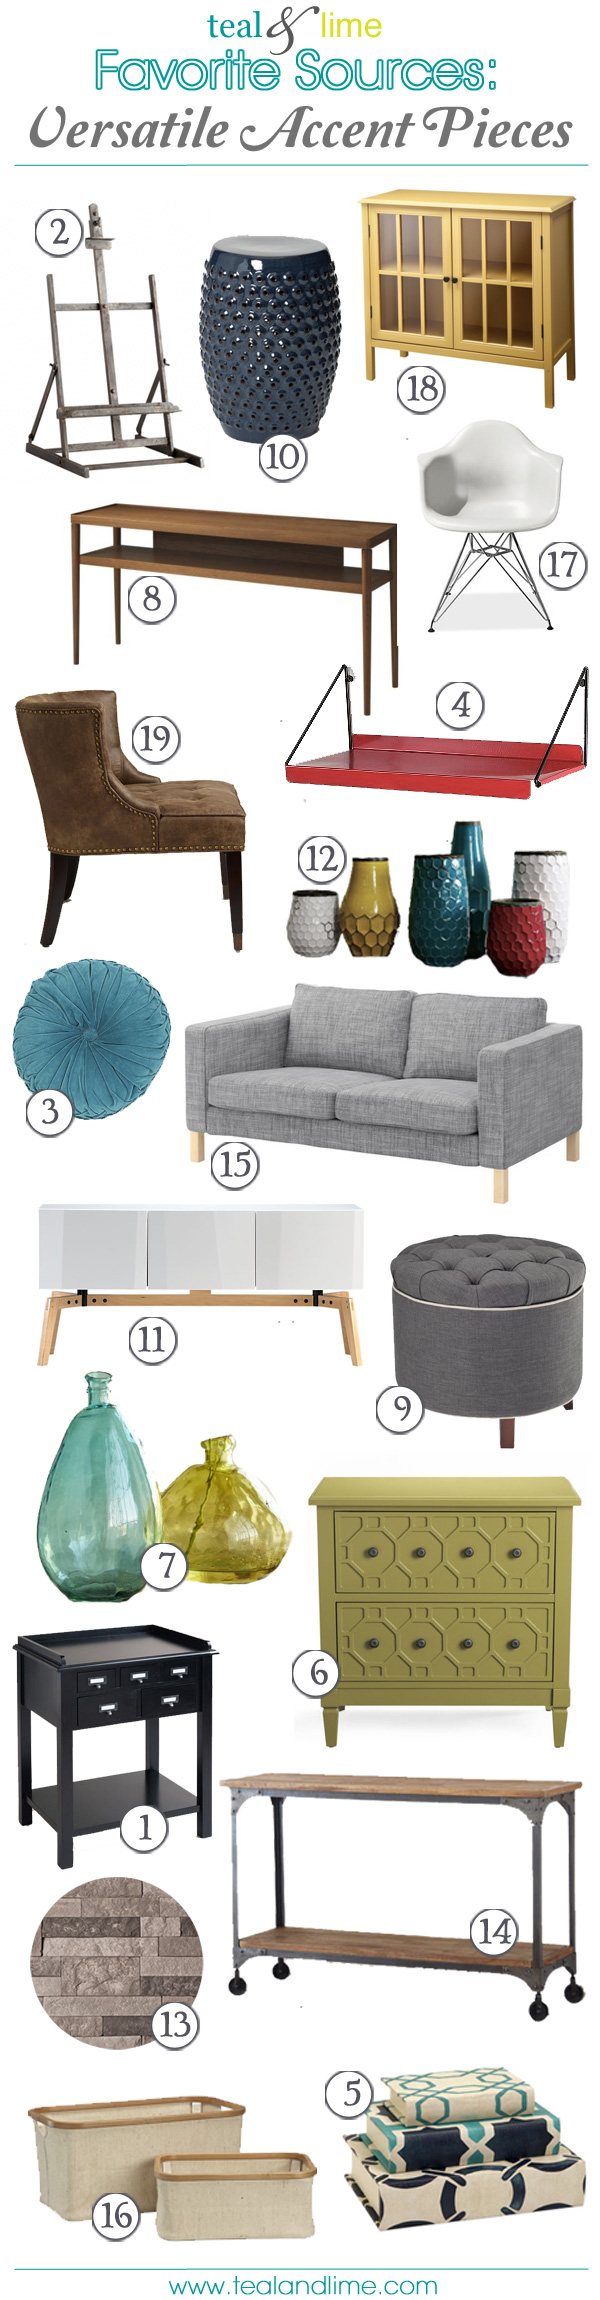 Favorite Sources: Versatile Accent Pieces